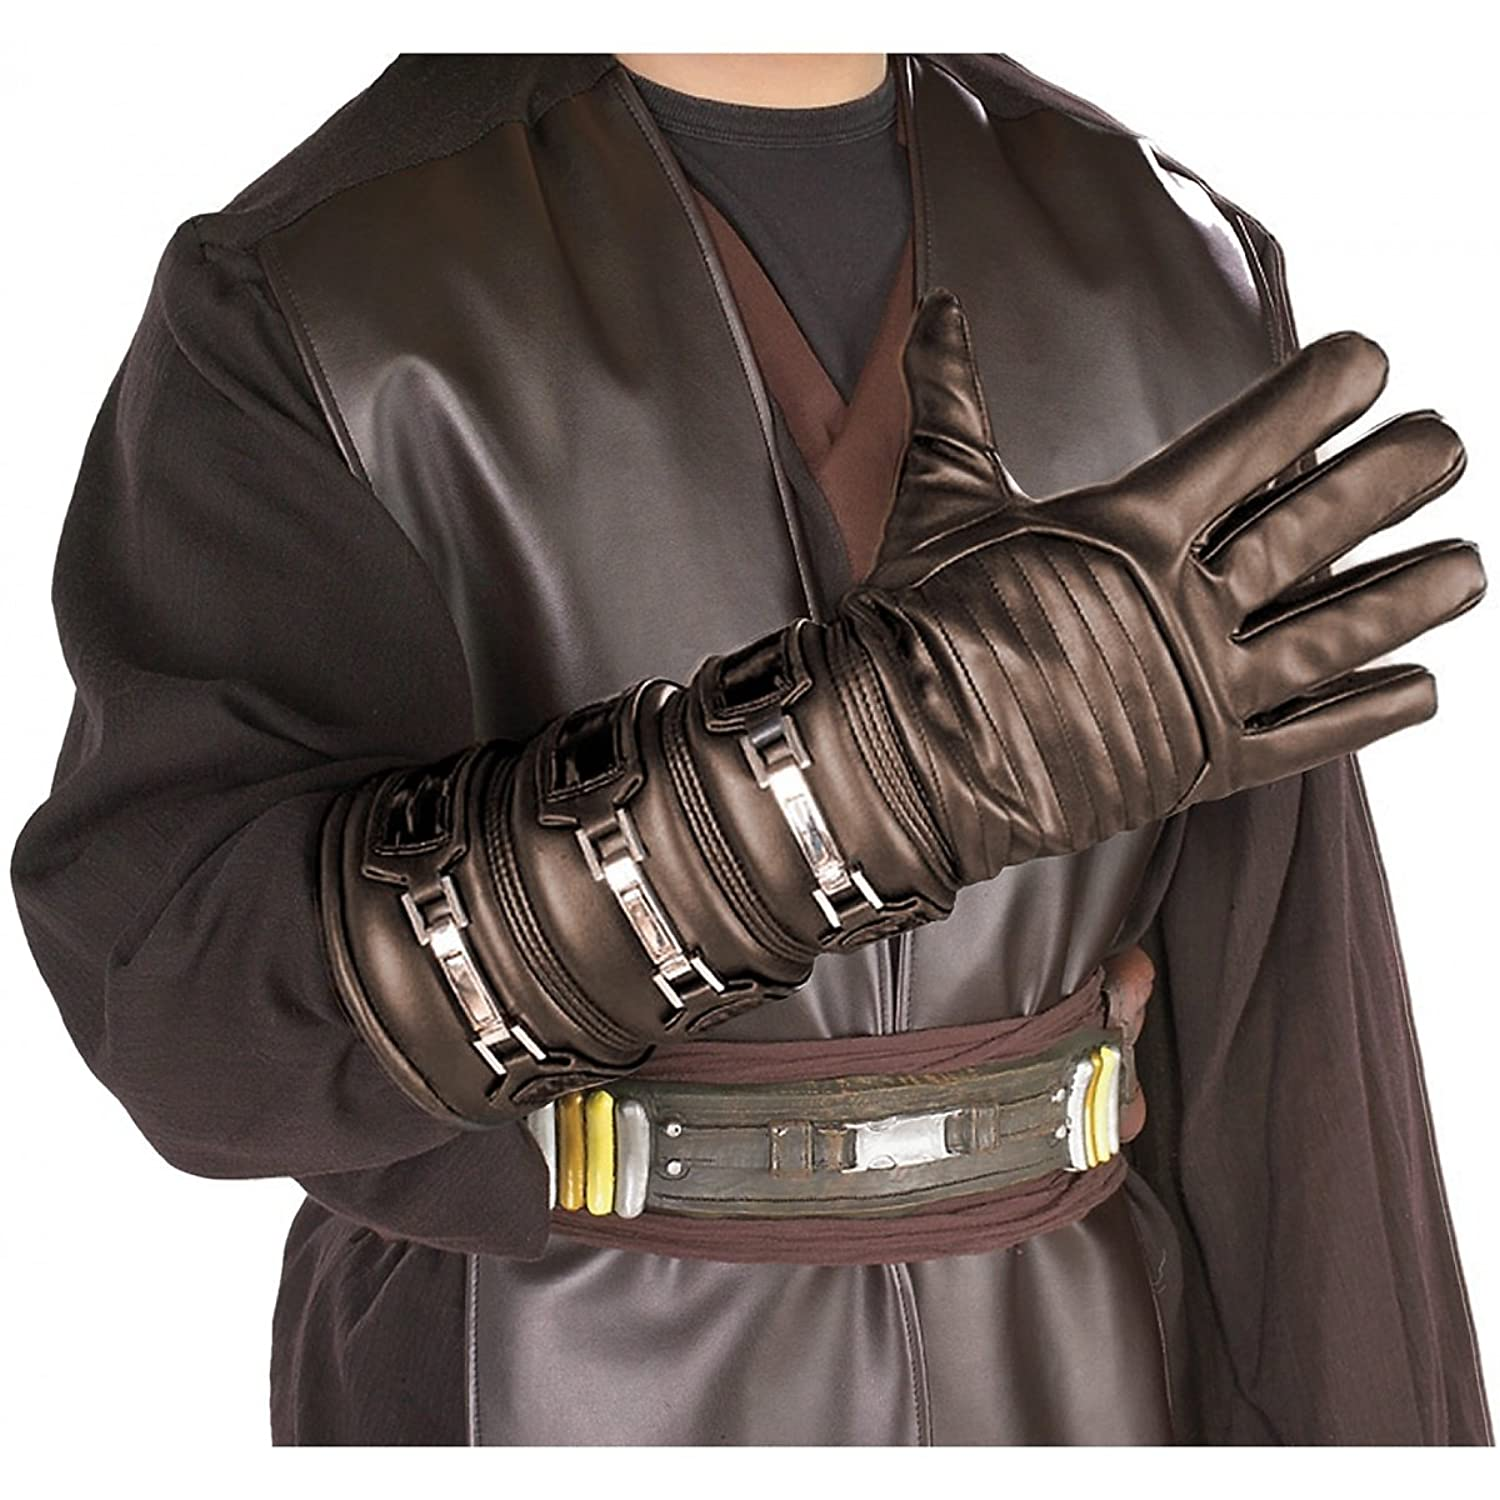 amazoncom anakin skywalker gauntlet costume accessory clothing